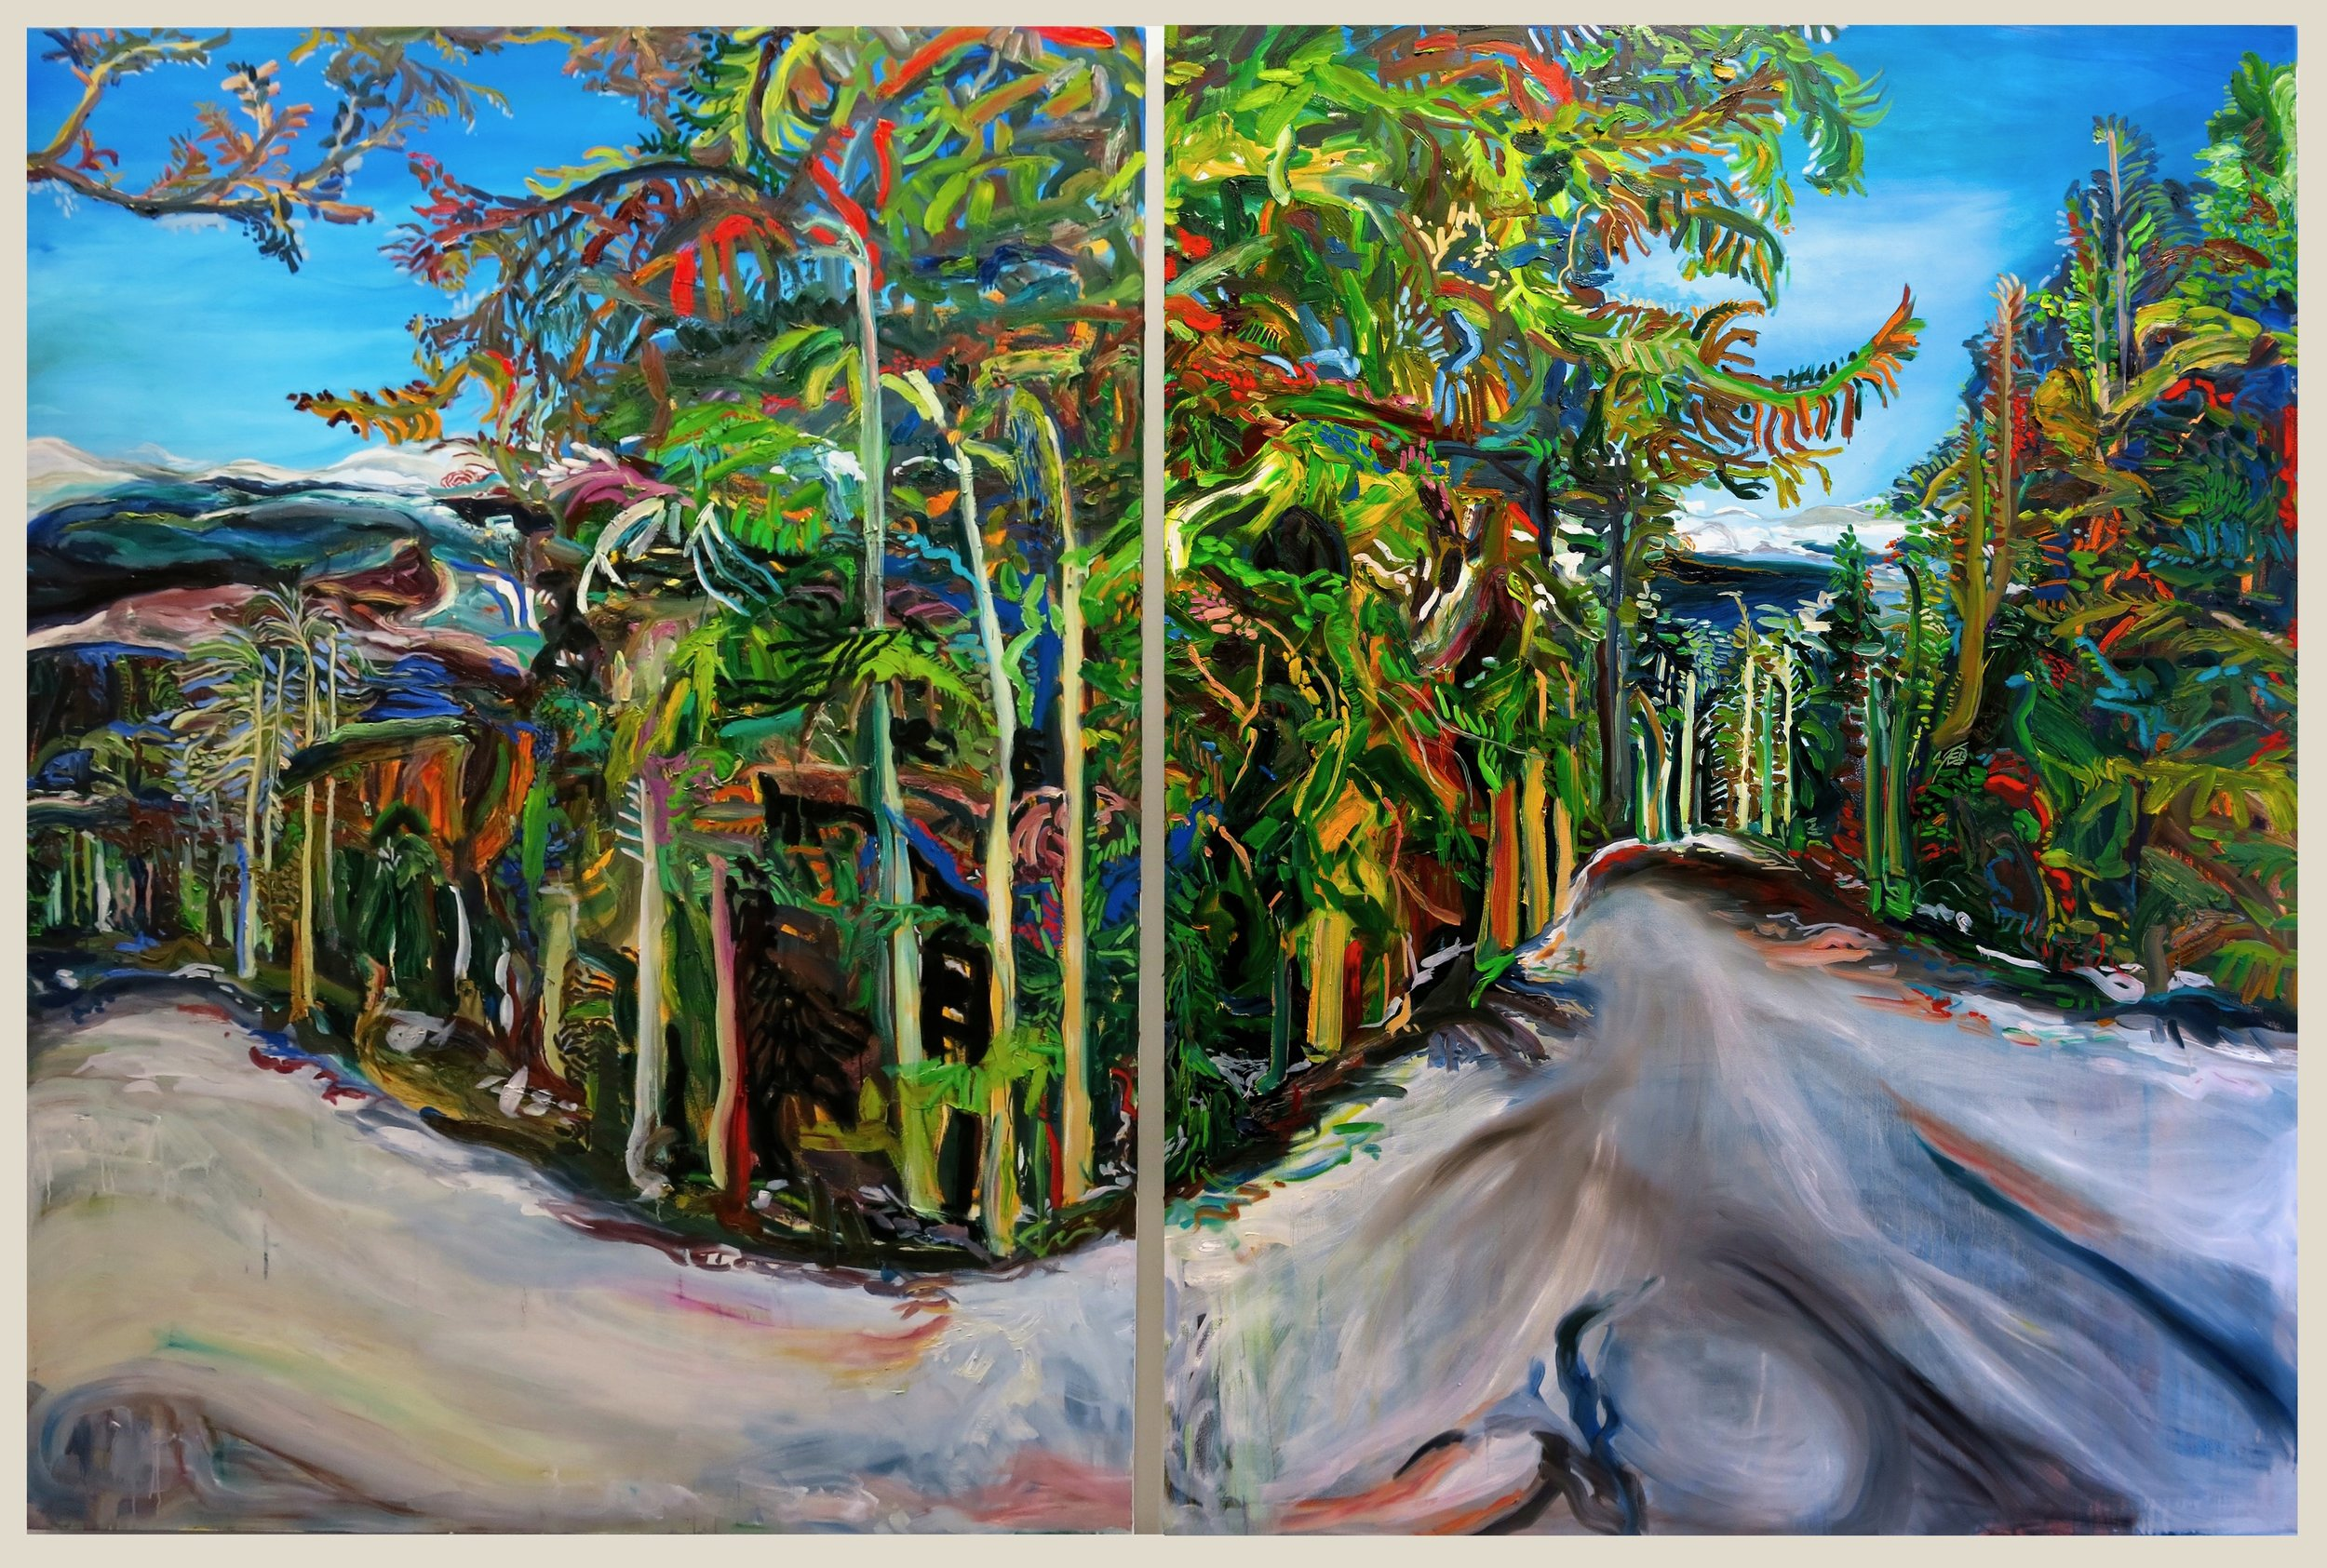 Beaver Creek   Winner of the M H Hicks Prize and exhibited at the 2015 Annual Juried Student Exhibition, David Winton Bell Gallery April 10th-25th.  Oil on canvas, 12ft by 8ft diptych (Two panels of 6ft by 8ft canvases)  Hand-built wooden canvas  Brown University Granoff Collection More detailed images at Folkmade Shop: at: http://www.folkmade.org/susans-shop/beaver-creek